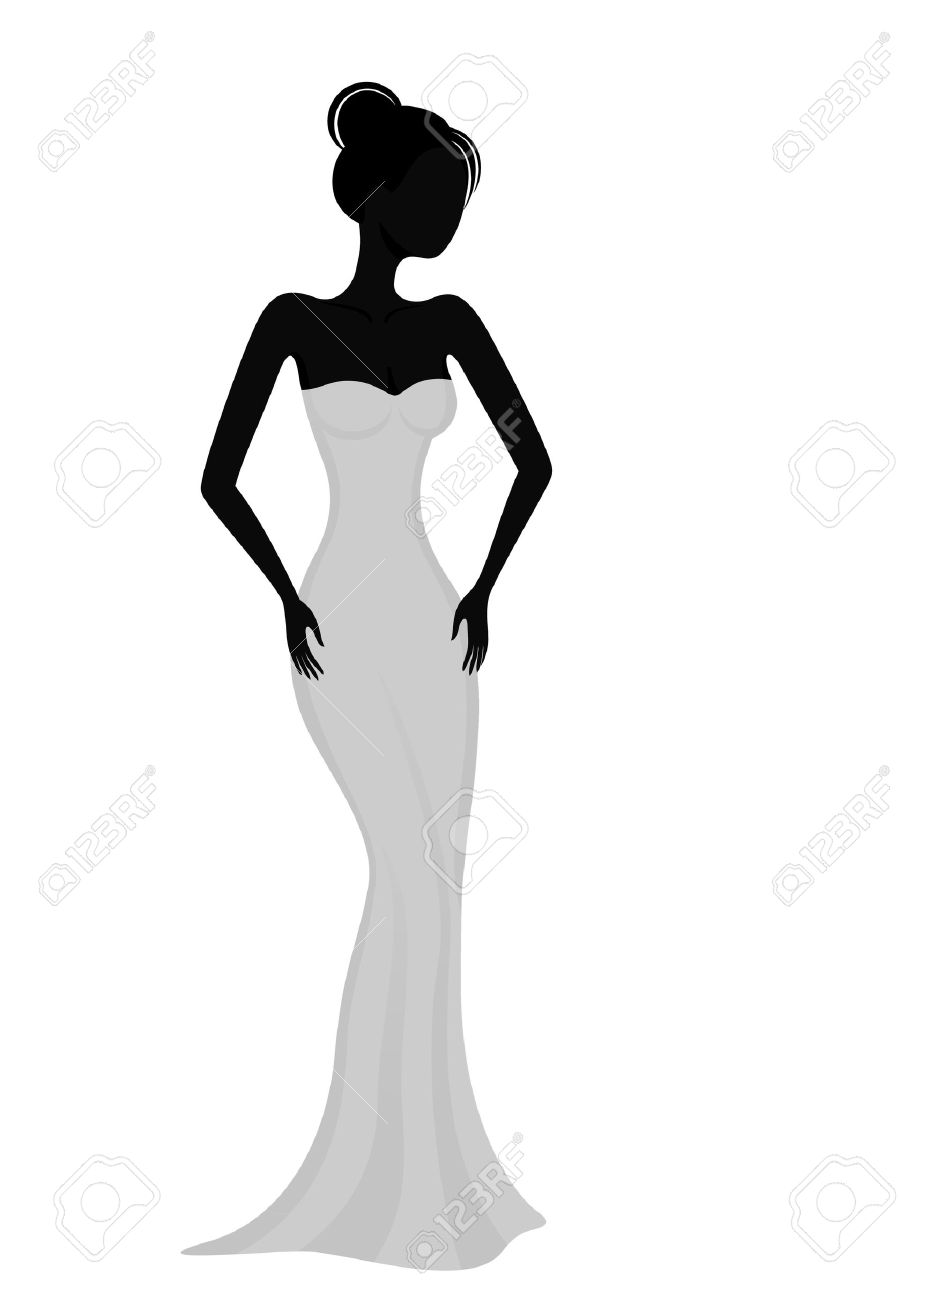 5,487 Evening Dress Cliparts, Stock Vector And Royalty Free.